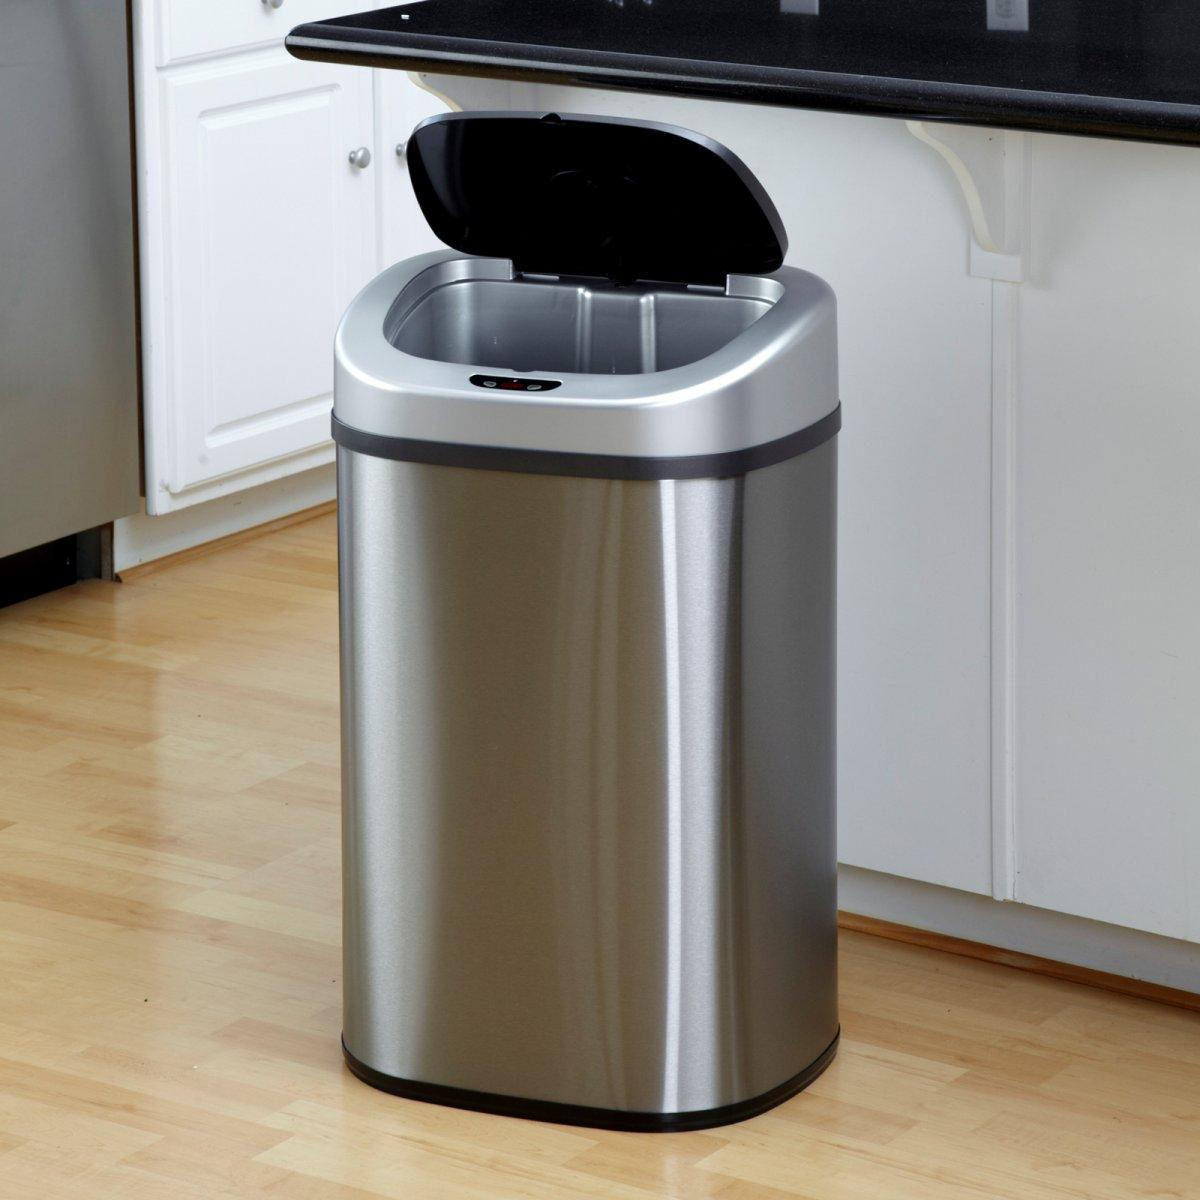 $34.99 13-Gallon Touch-Free Sensor Automatic Stainless-Steel Trash Can Kitchen